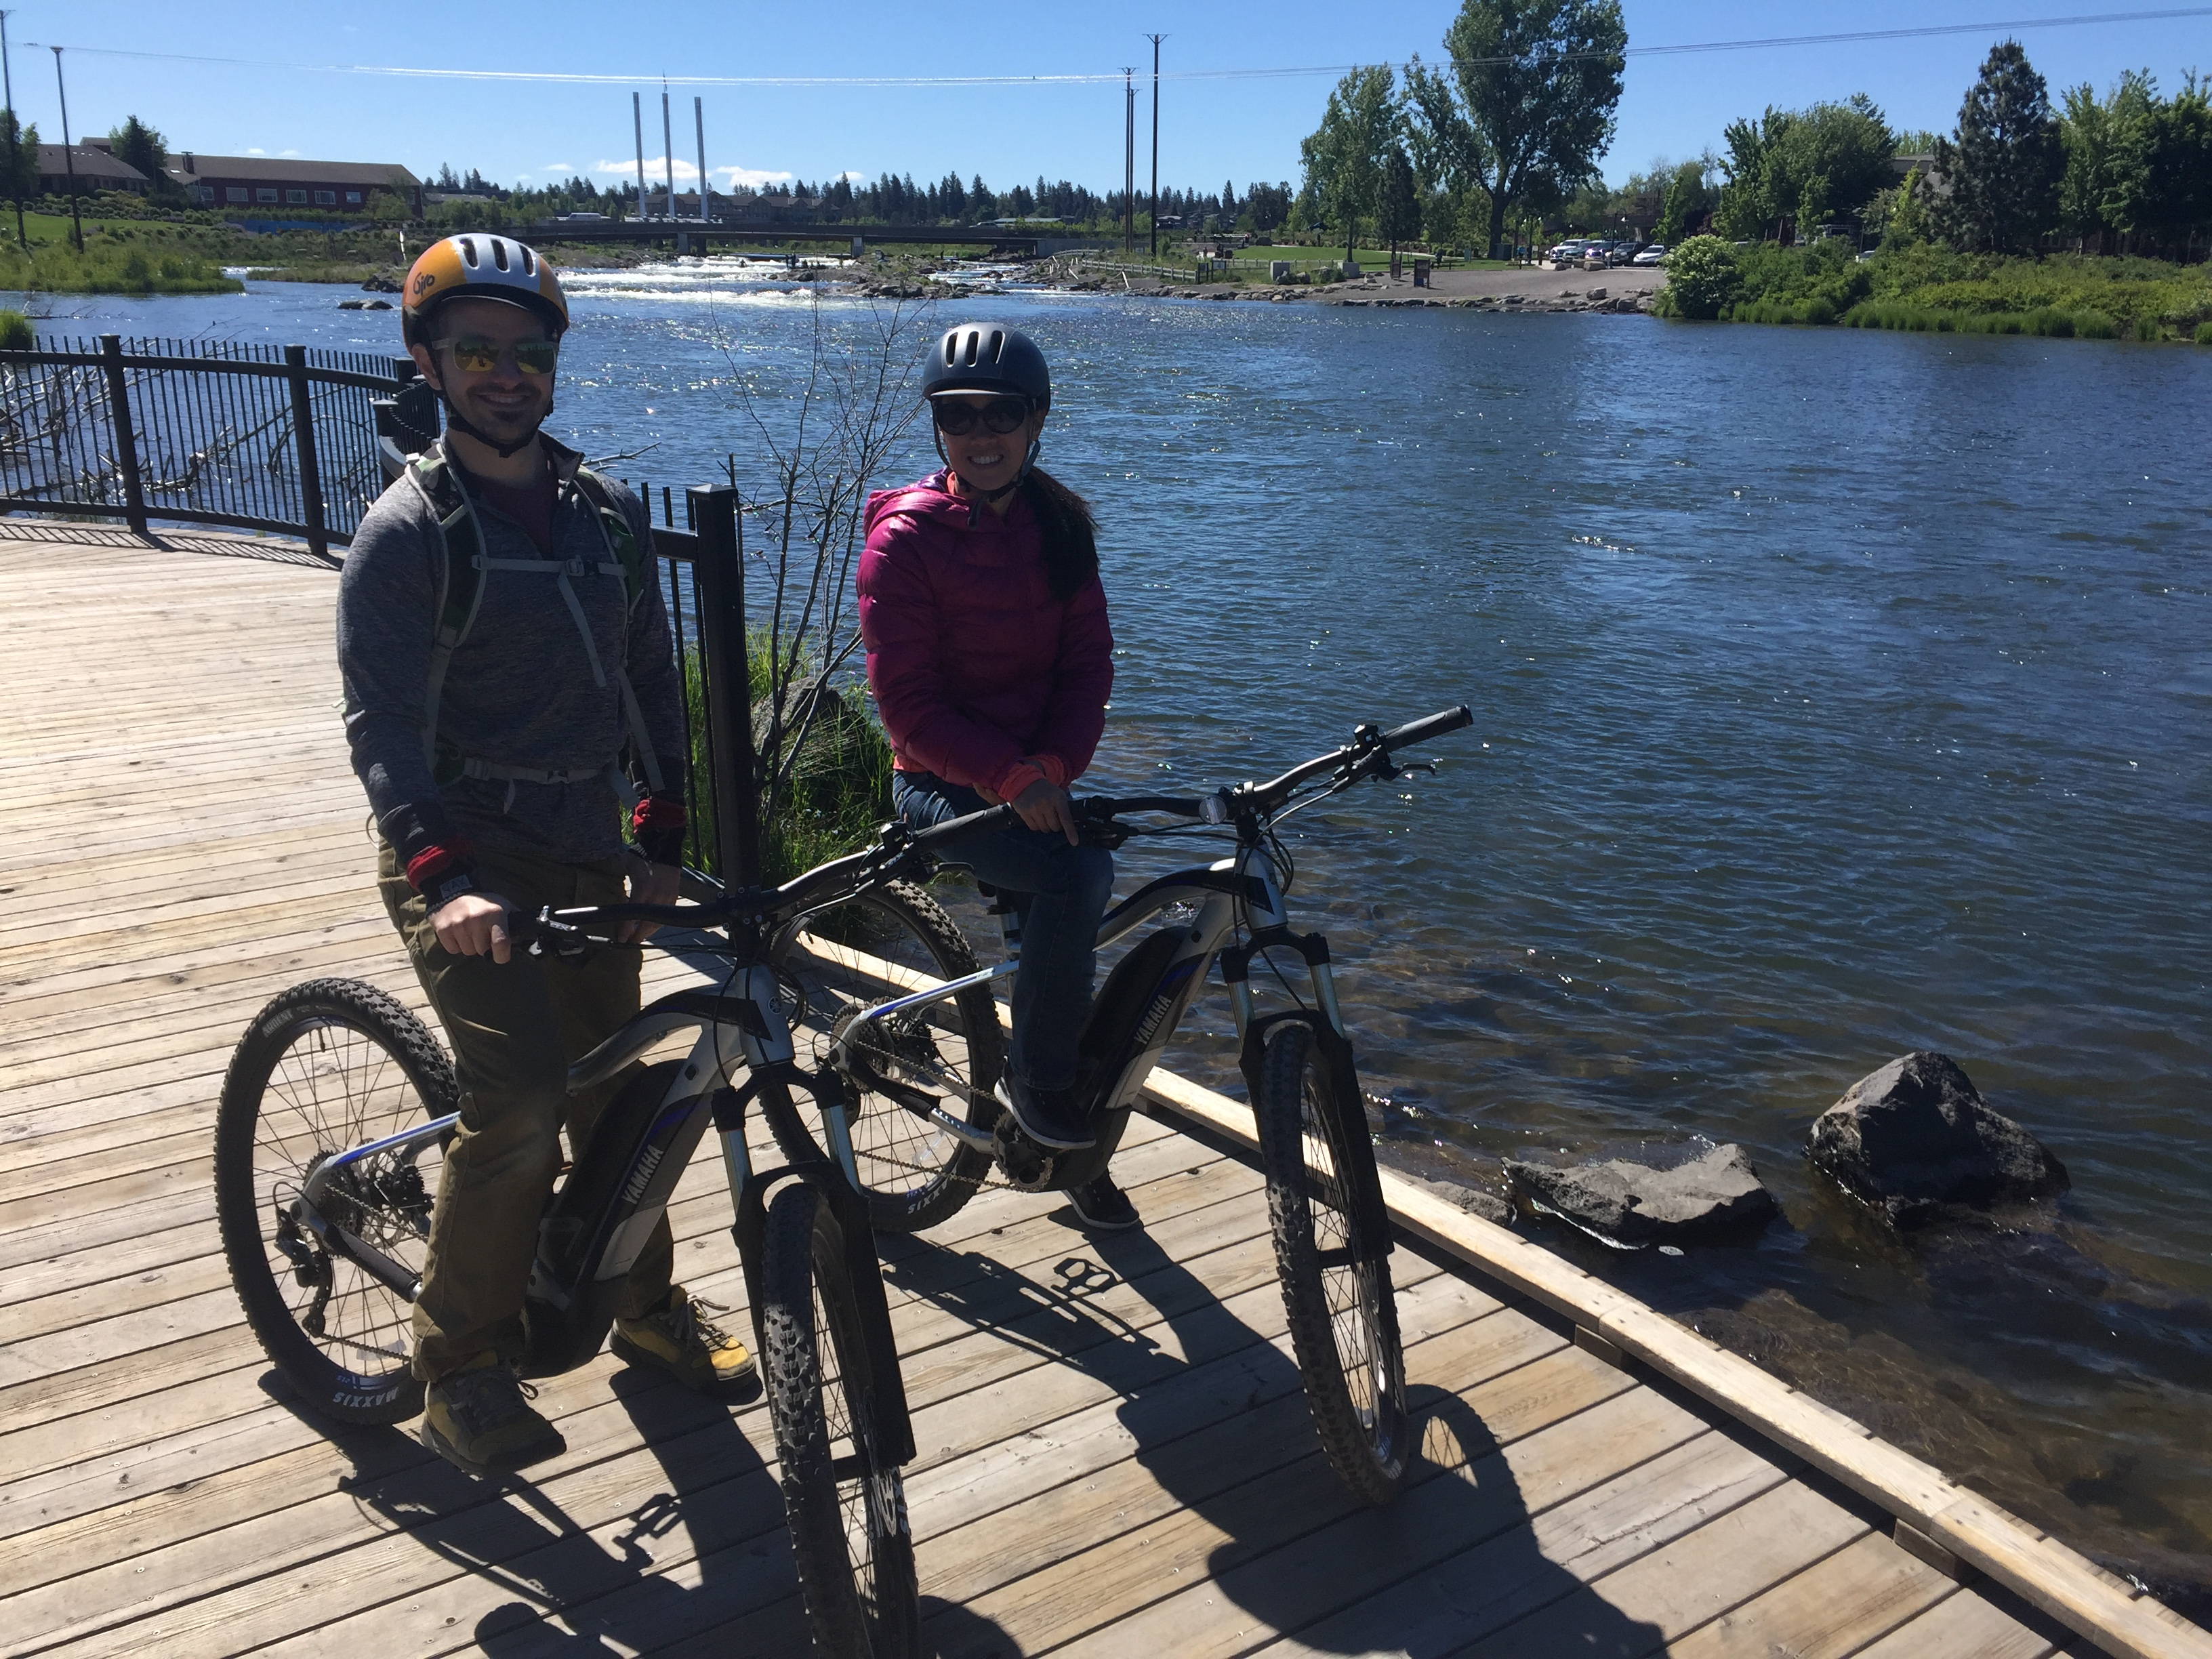 Sightseeing Tours & Activities in Bend & Central Oregon